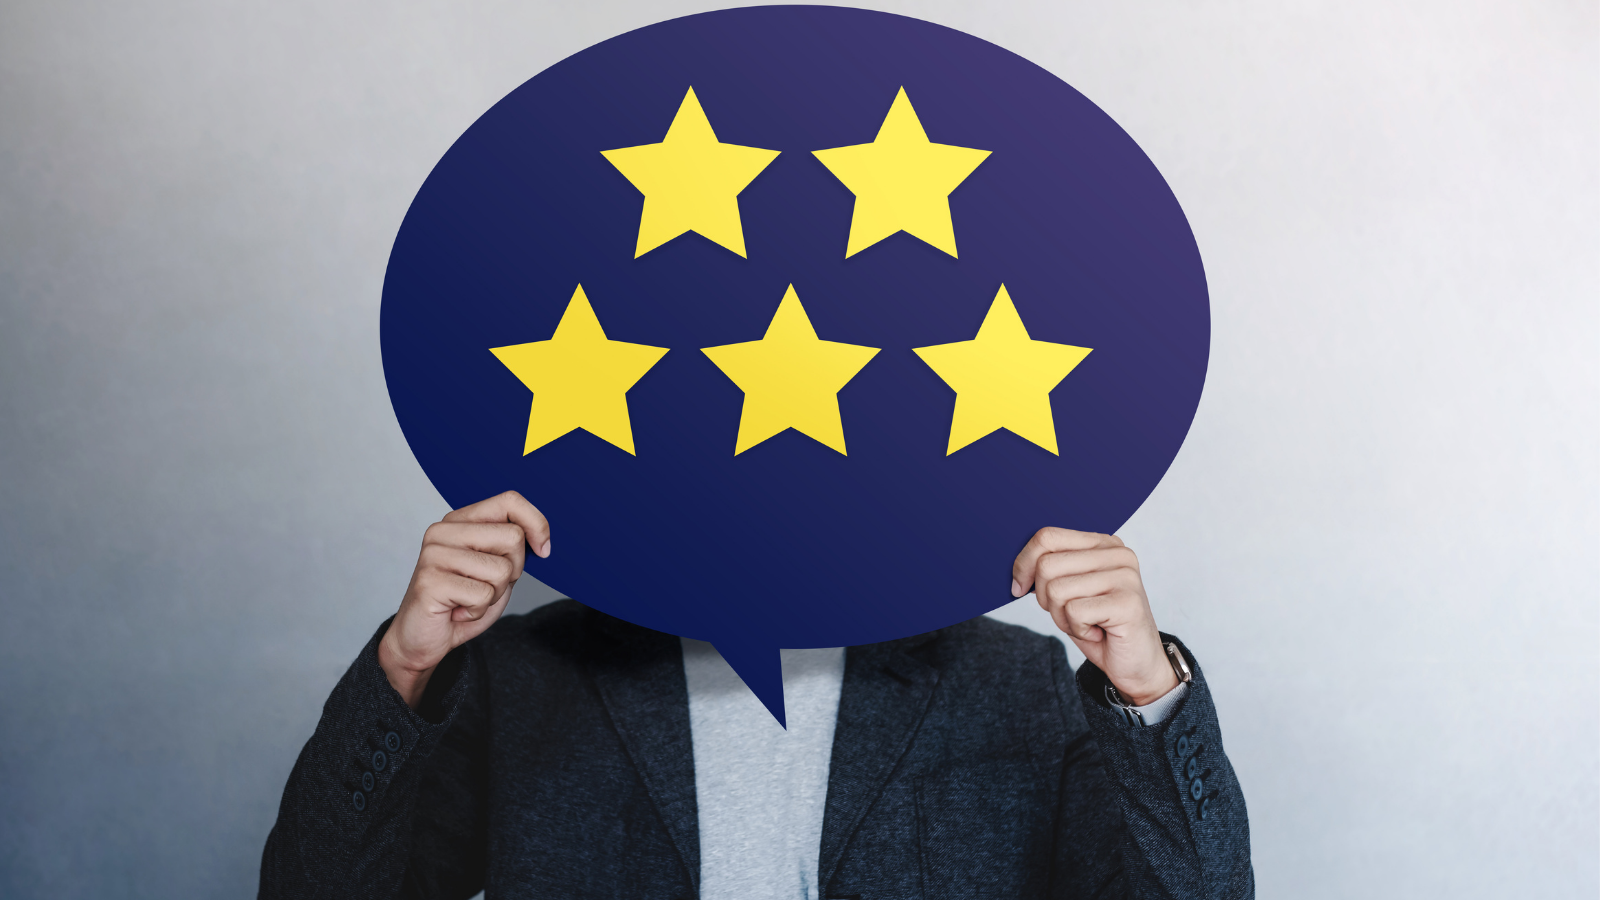 Improve Client experience